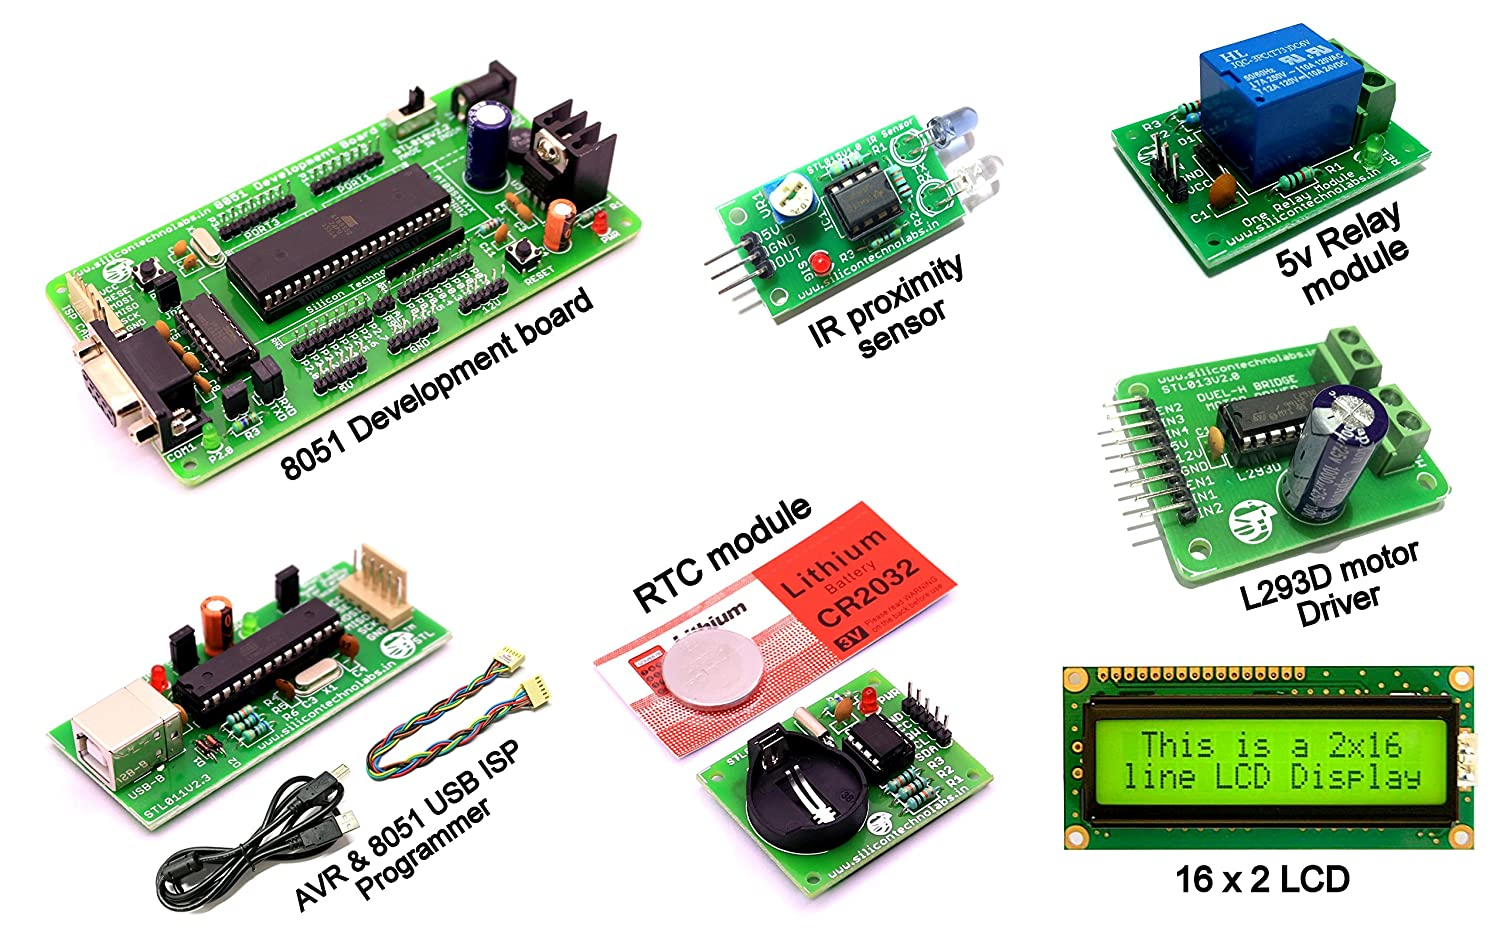 Silicon Technolabs 8051 Development Board With Programmer Ds1307 Rtc Lab 10 Dc Motor Interfacing To Picmicro Embedded Module 5v One Channel Relay Industrial Scientific